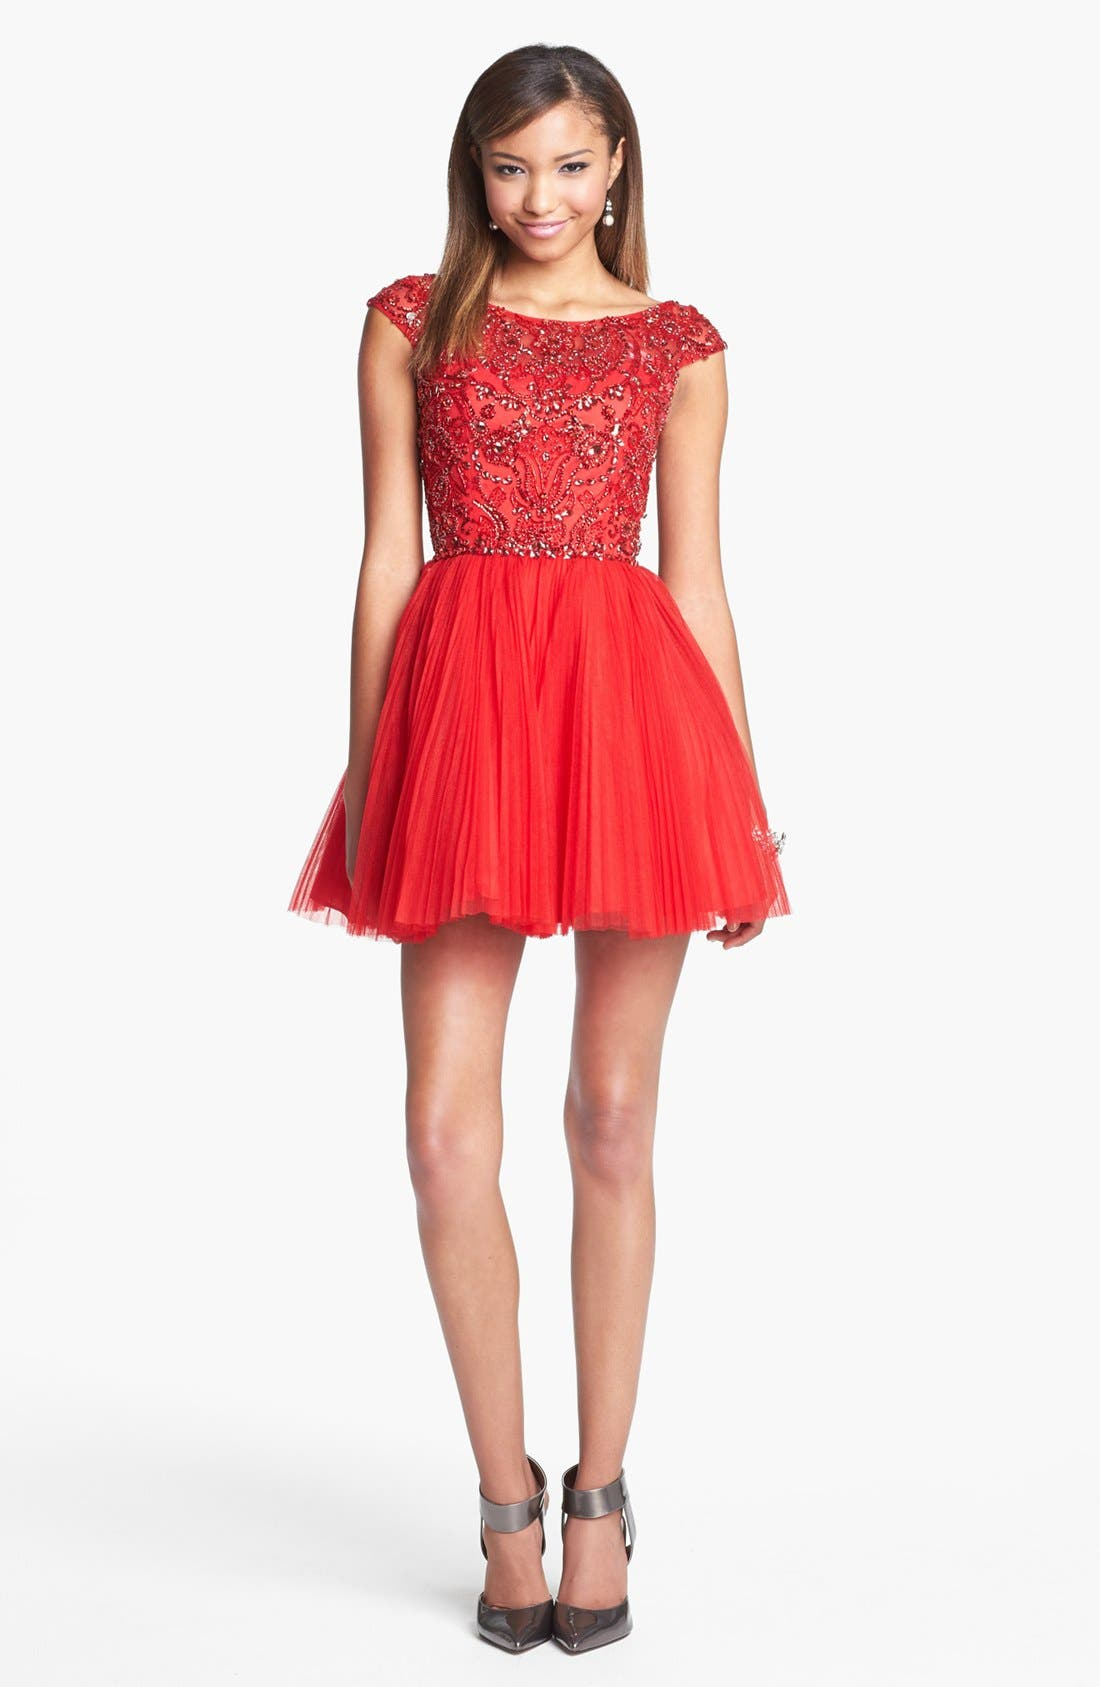 Alternate Image 1 Selected - Sherri Hill Embellished Tulle Fit & Flare Dress (Online Exclusive)